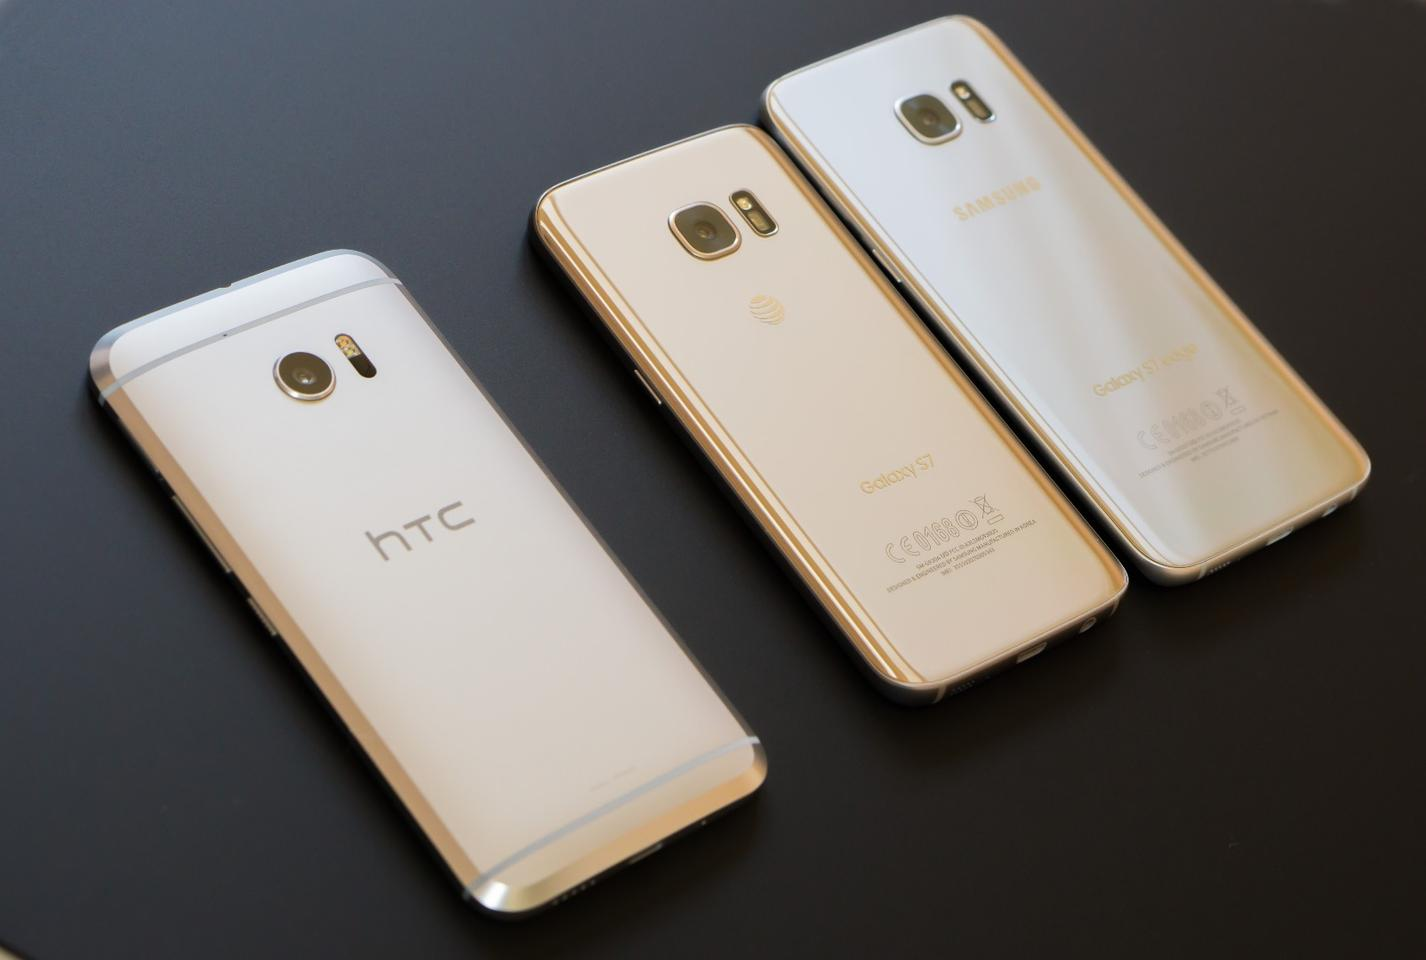 The HTC 10 with the Galaxy S7 and Galaxy S7 edge